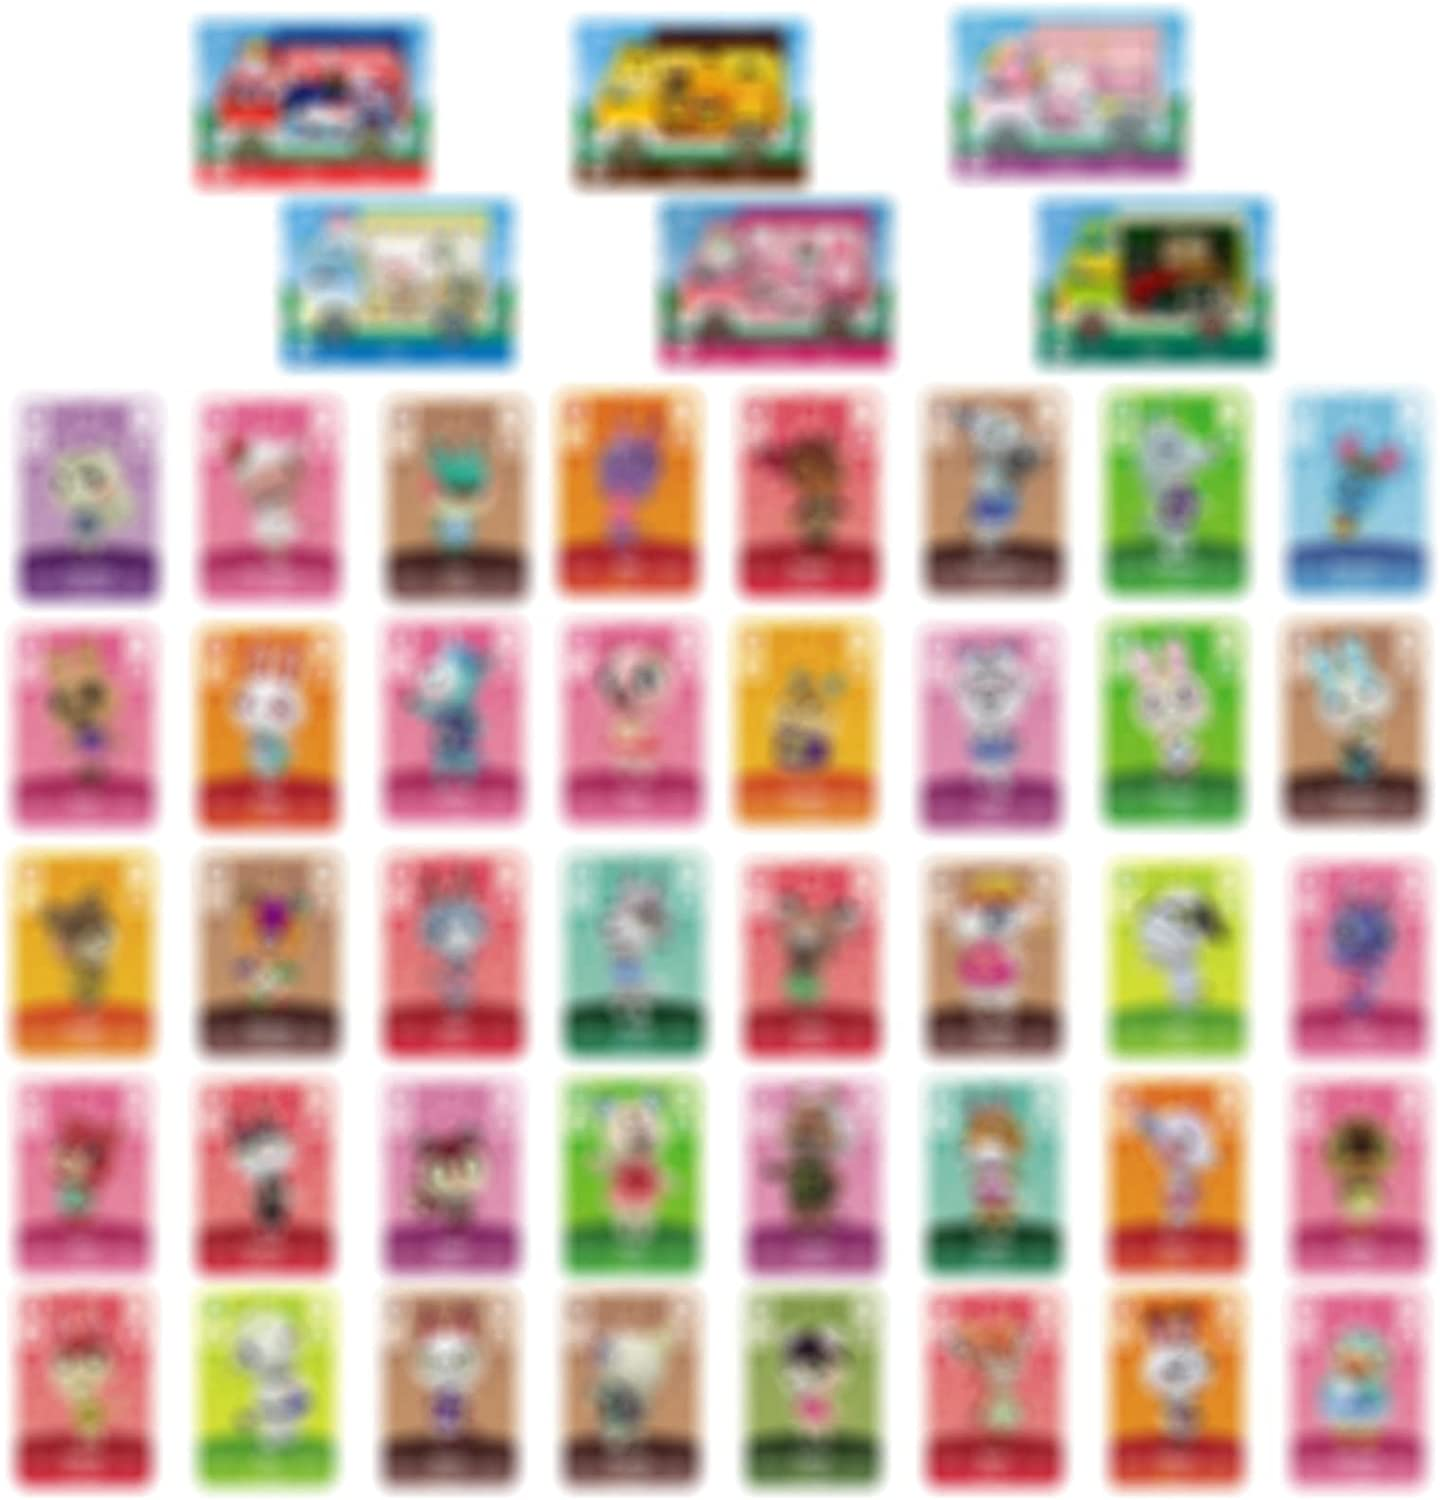 YTWQ 46Pcs NFC Mini Cards for ACNH Card Compatible with Switch/Lite/New 3DS